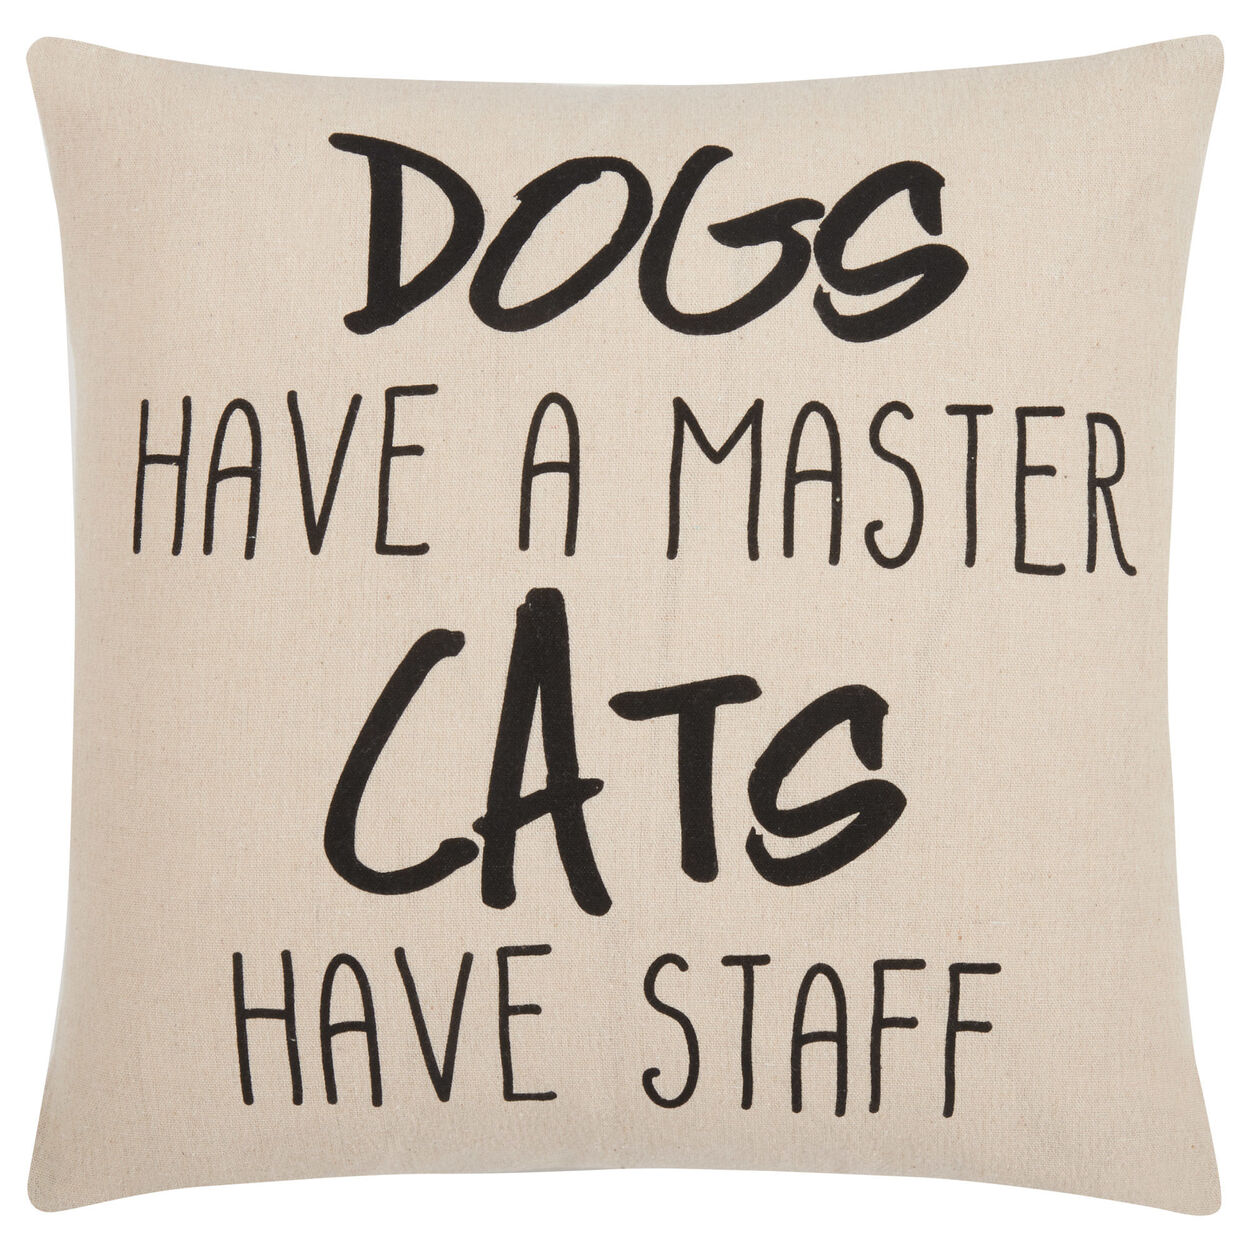 "Dogs and Cats Decorative Pillow Cover 18"" X 18"""